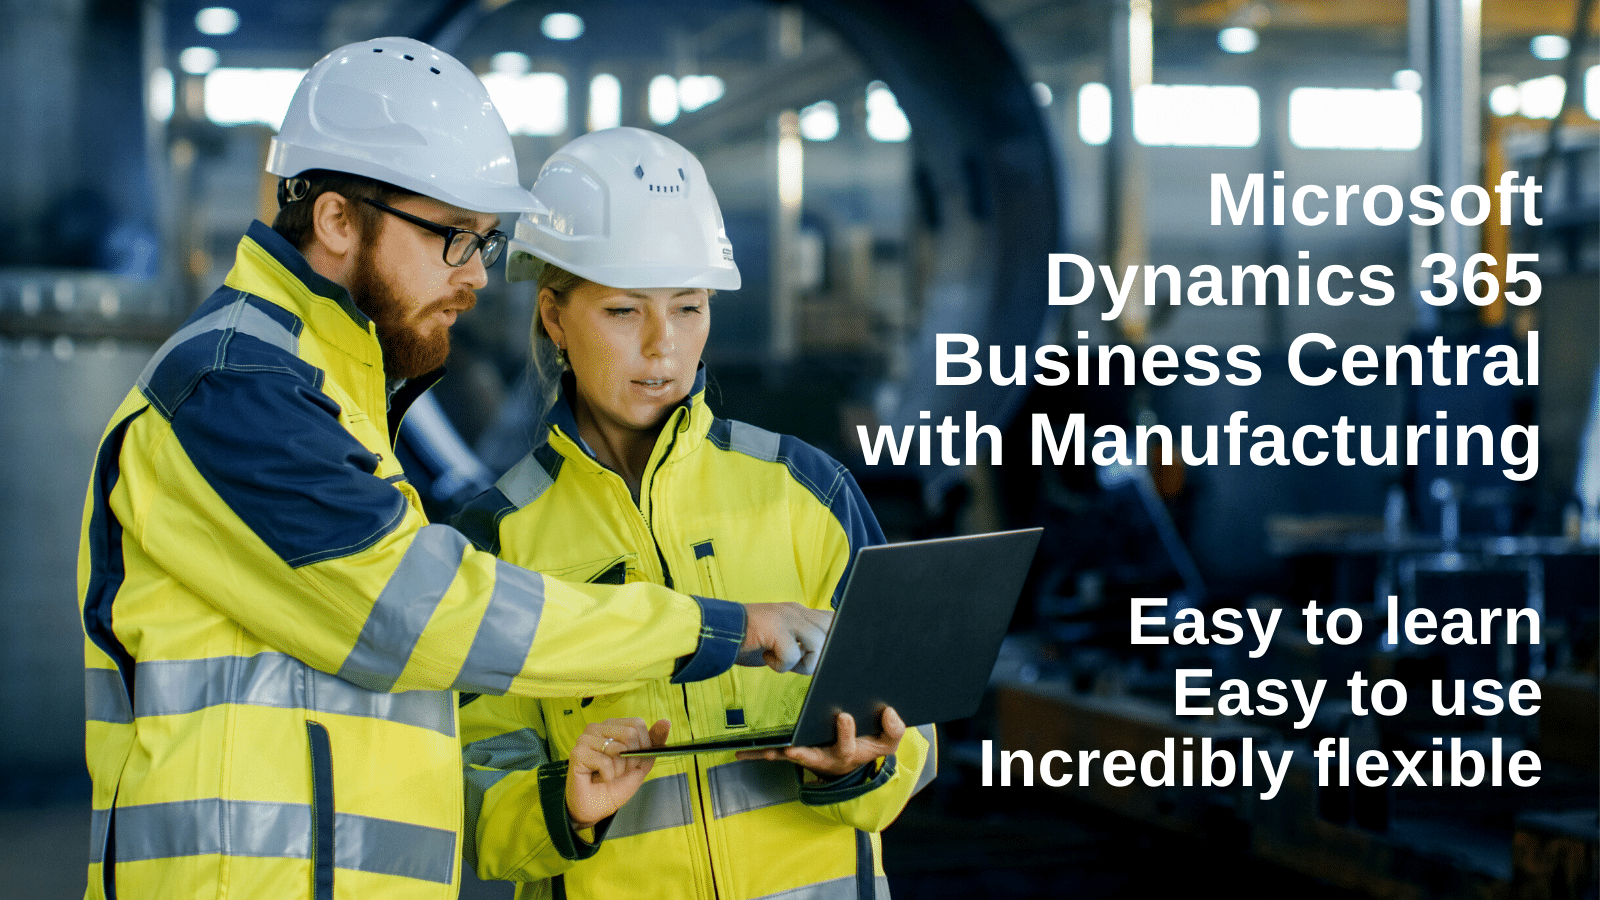 Microsoft Dynamics 365 Business Central with Manufacturing